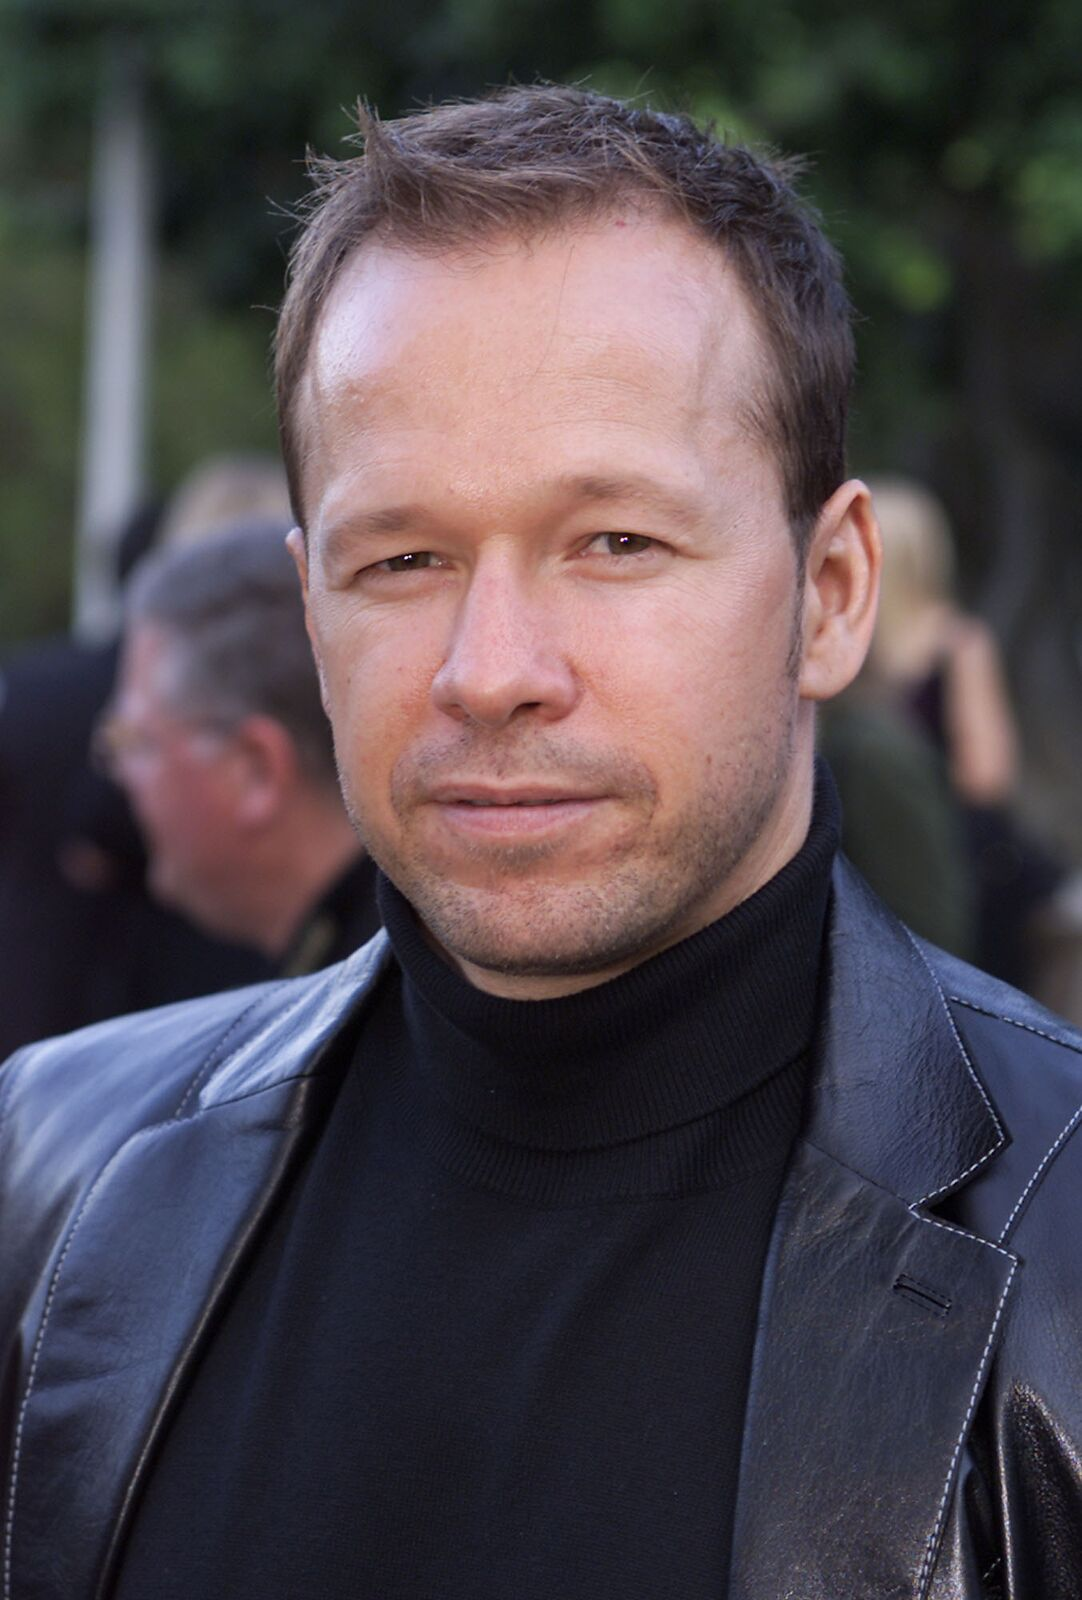 """Donnie Wahlberg at the premiere of HBO's """"Band of Brothers"""" at the Hollywood Bowl, Los Angeles on August 28, 2001 